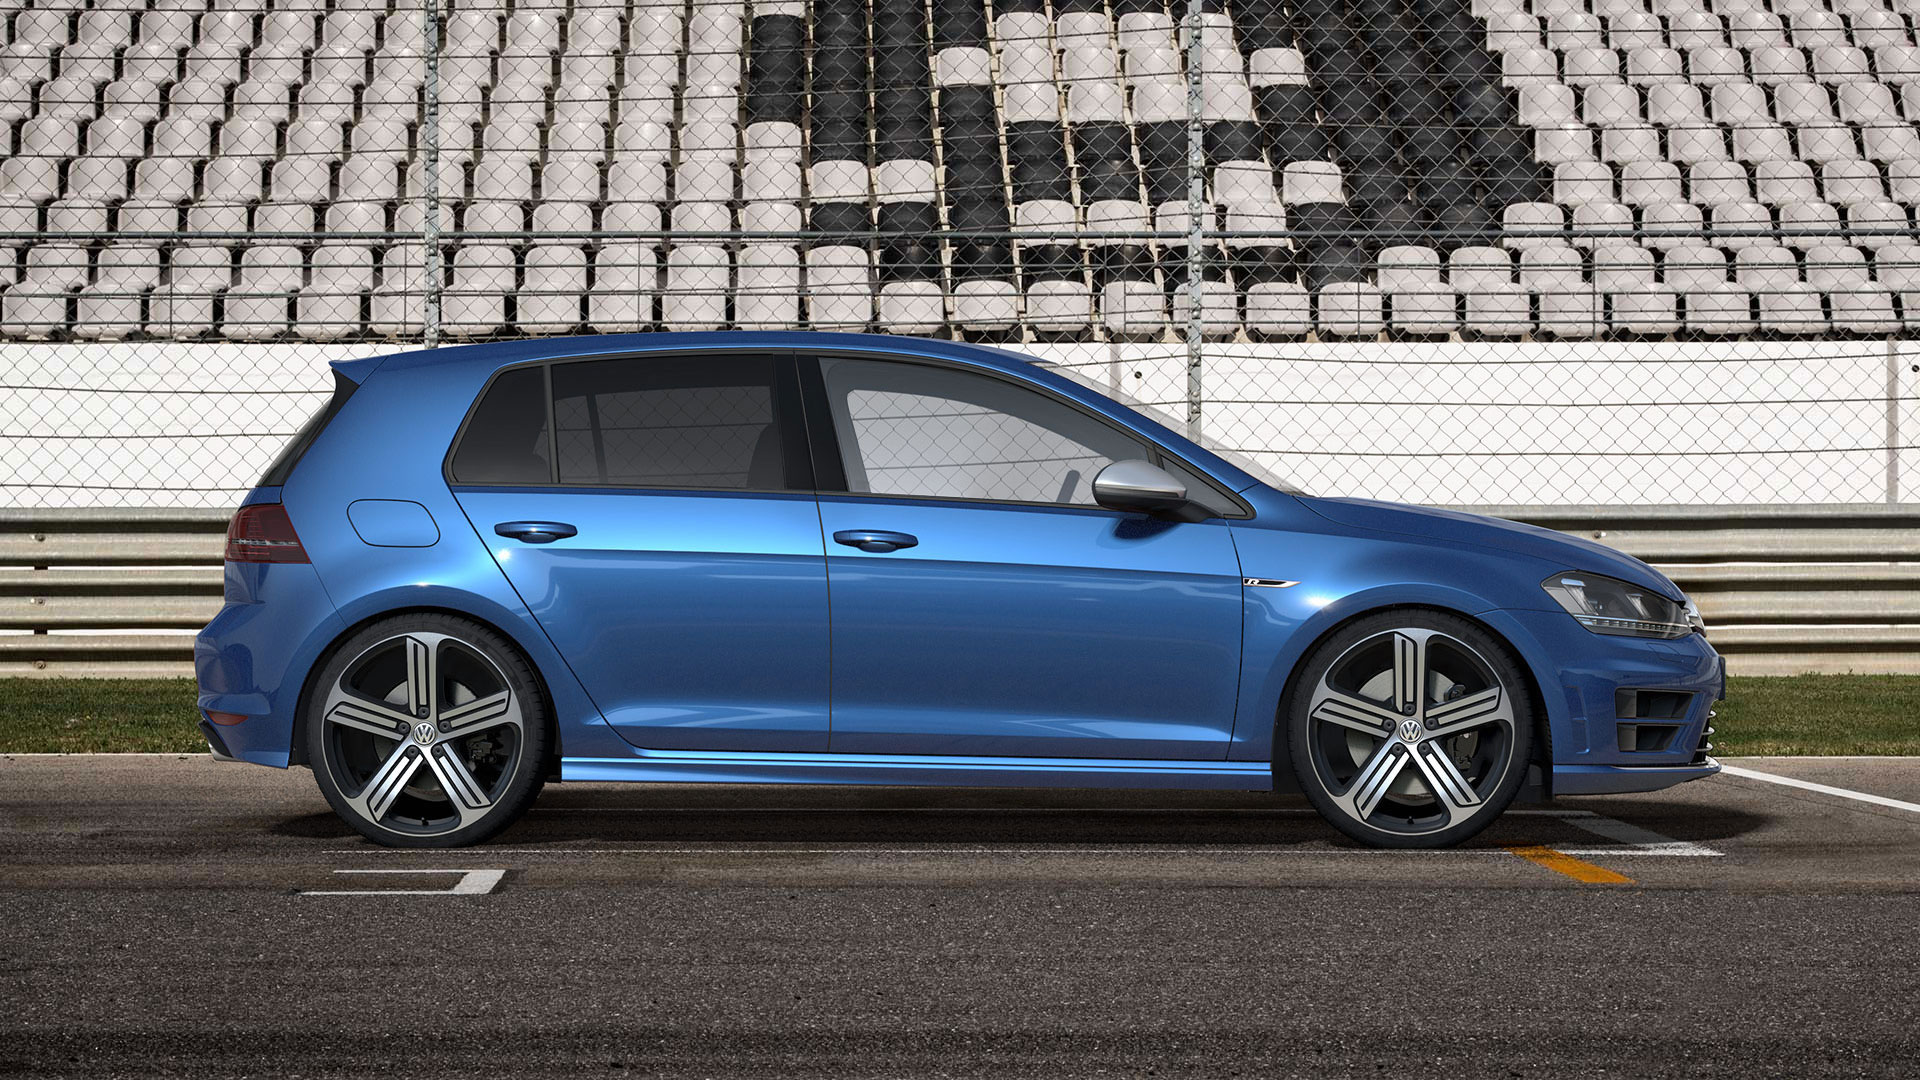 2015 volkswagen golf r side photo rising blue metallic color size 1920 x 1080 nr 8 26. Black Bedroom Furniture Sets. Home Design Ideas